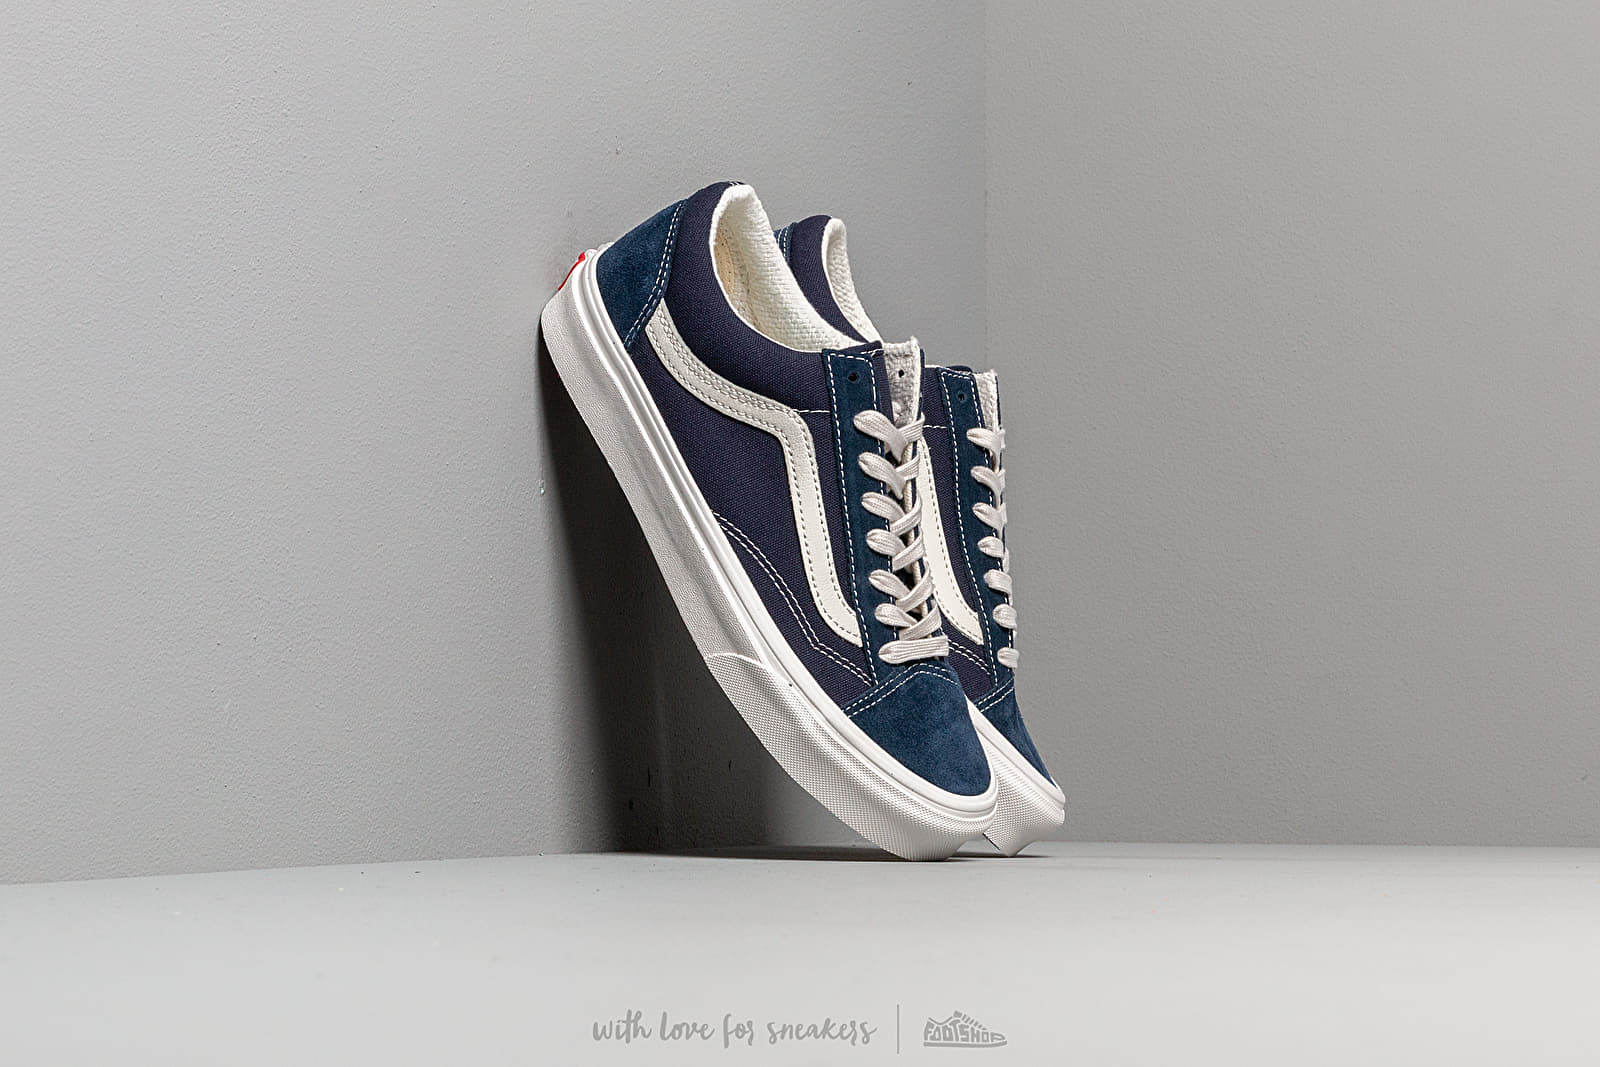 Vans Style 36 Dress Blues/ Blacknc De Blackn at a great price $77 buy at Footshop